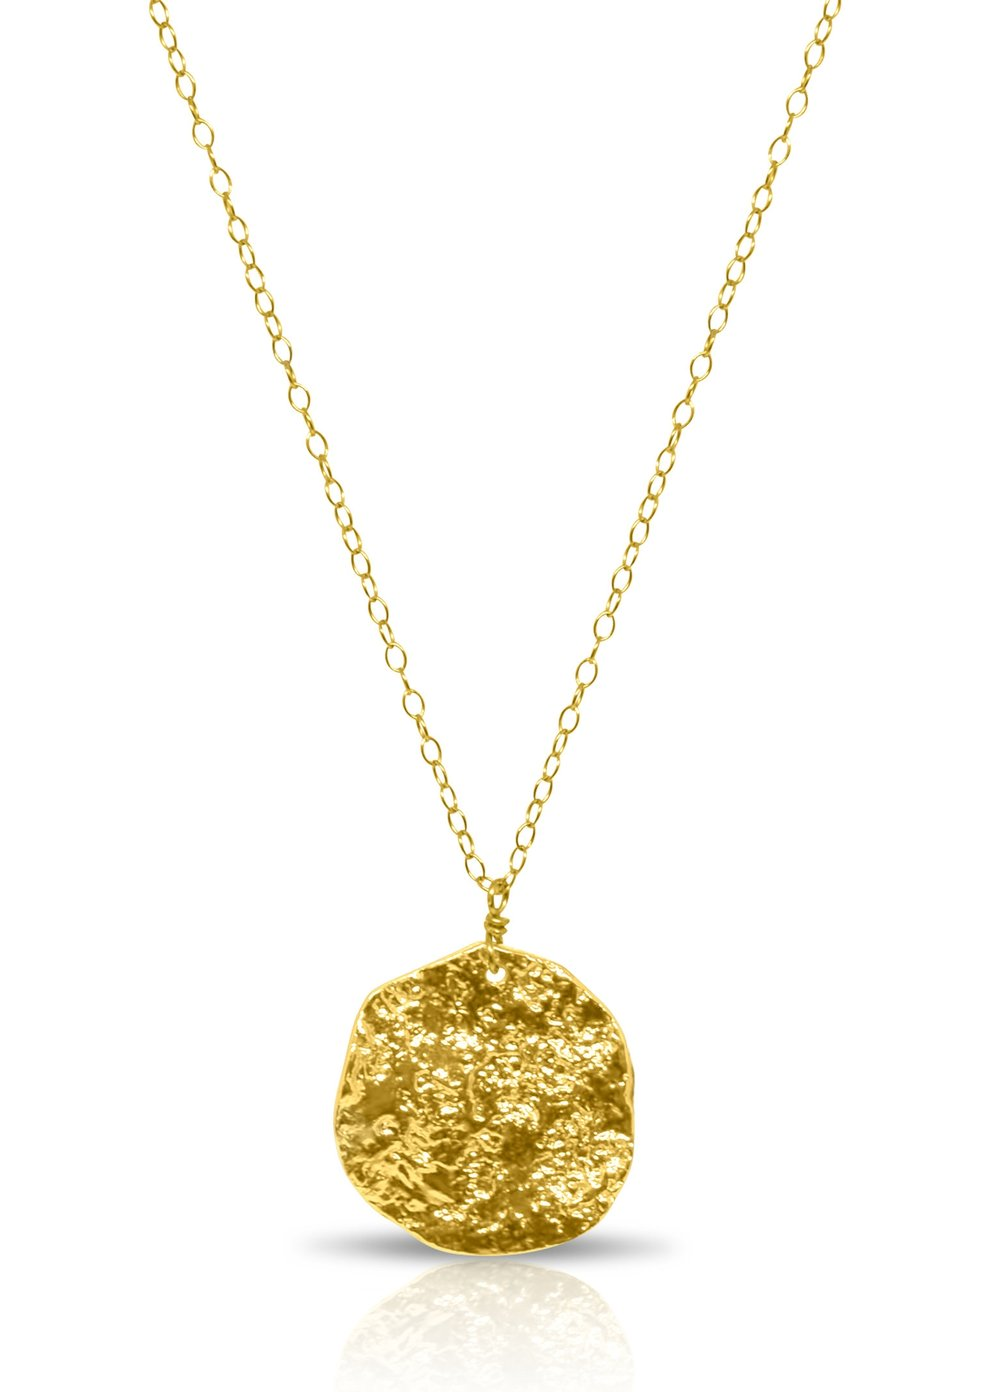 Gold Filled Textured Disc Necklace Boy Cherie Jewelry Delicate Fashion Jewelry That Won T Break Or Tarnish